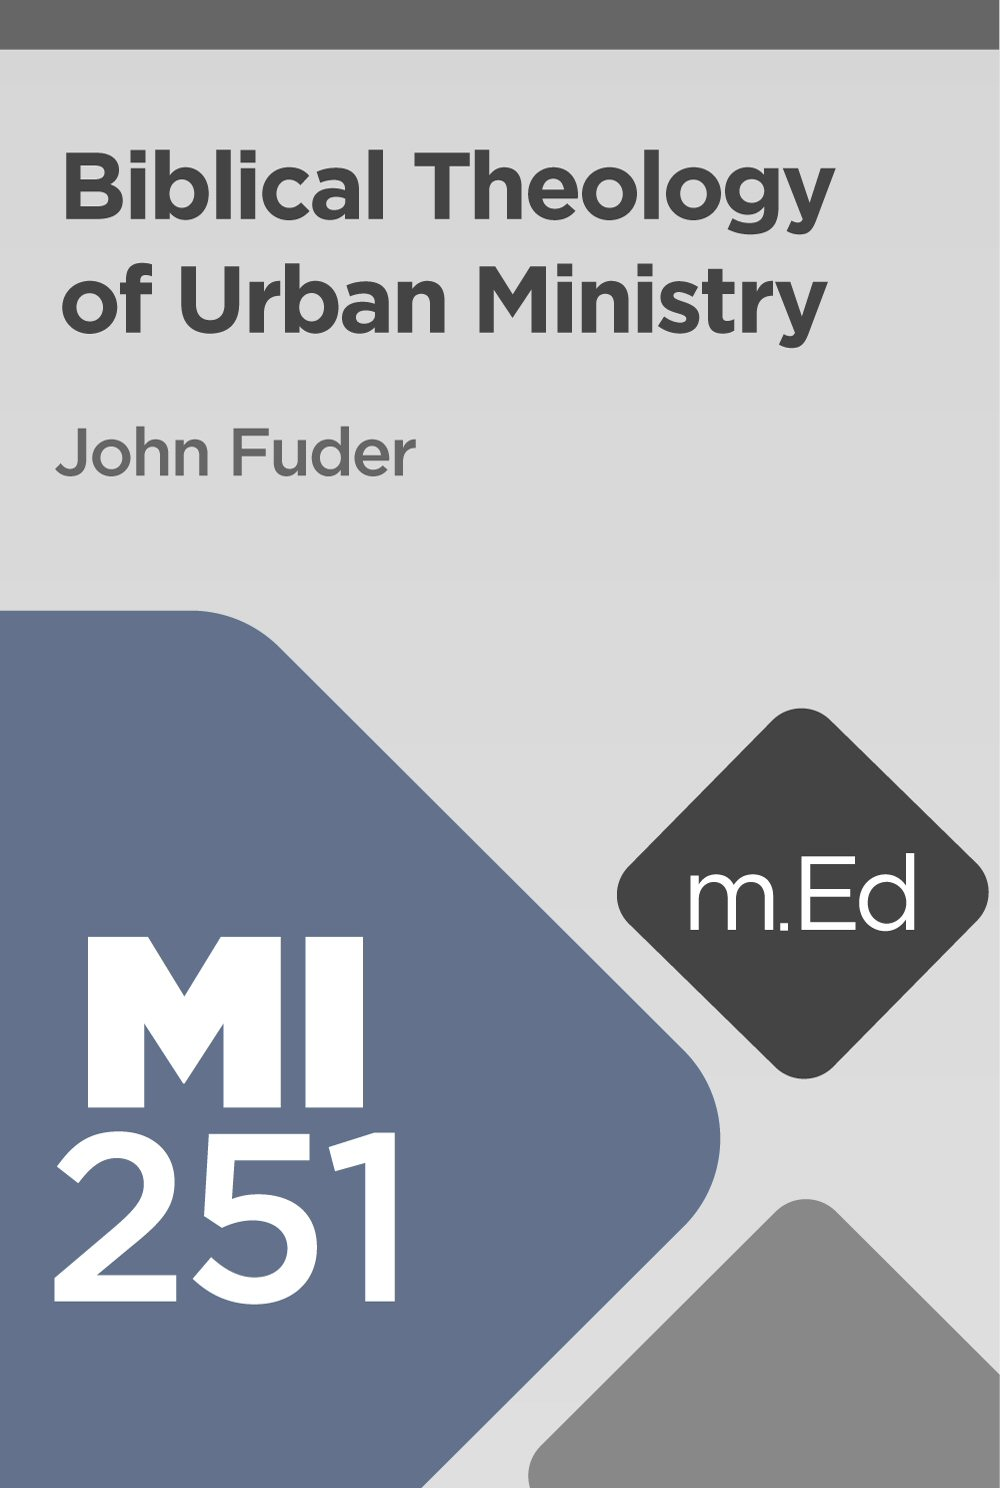 Mobile Ed: MI251 Biblical Theology of Urban Ministry (6 hour course)